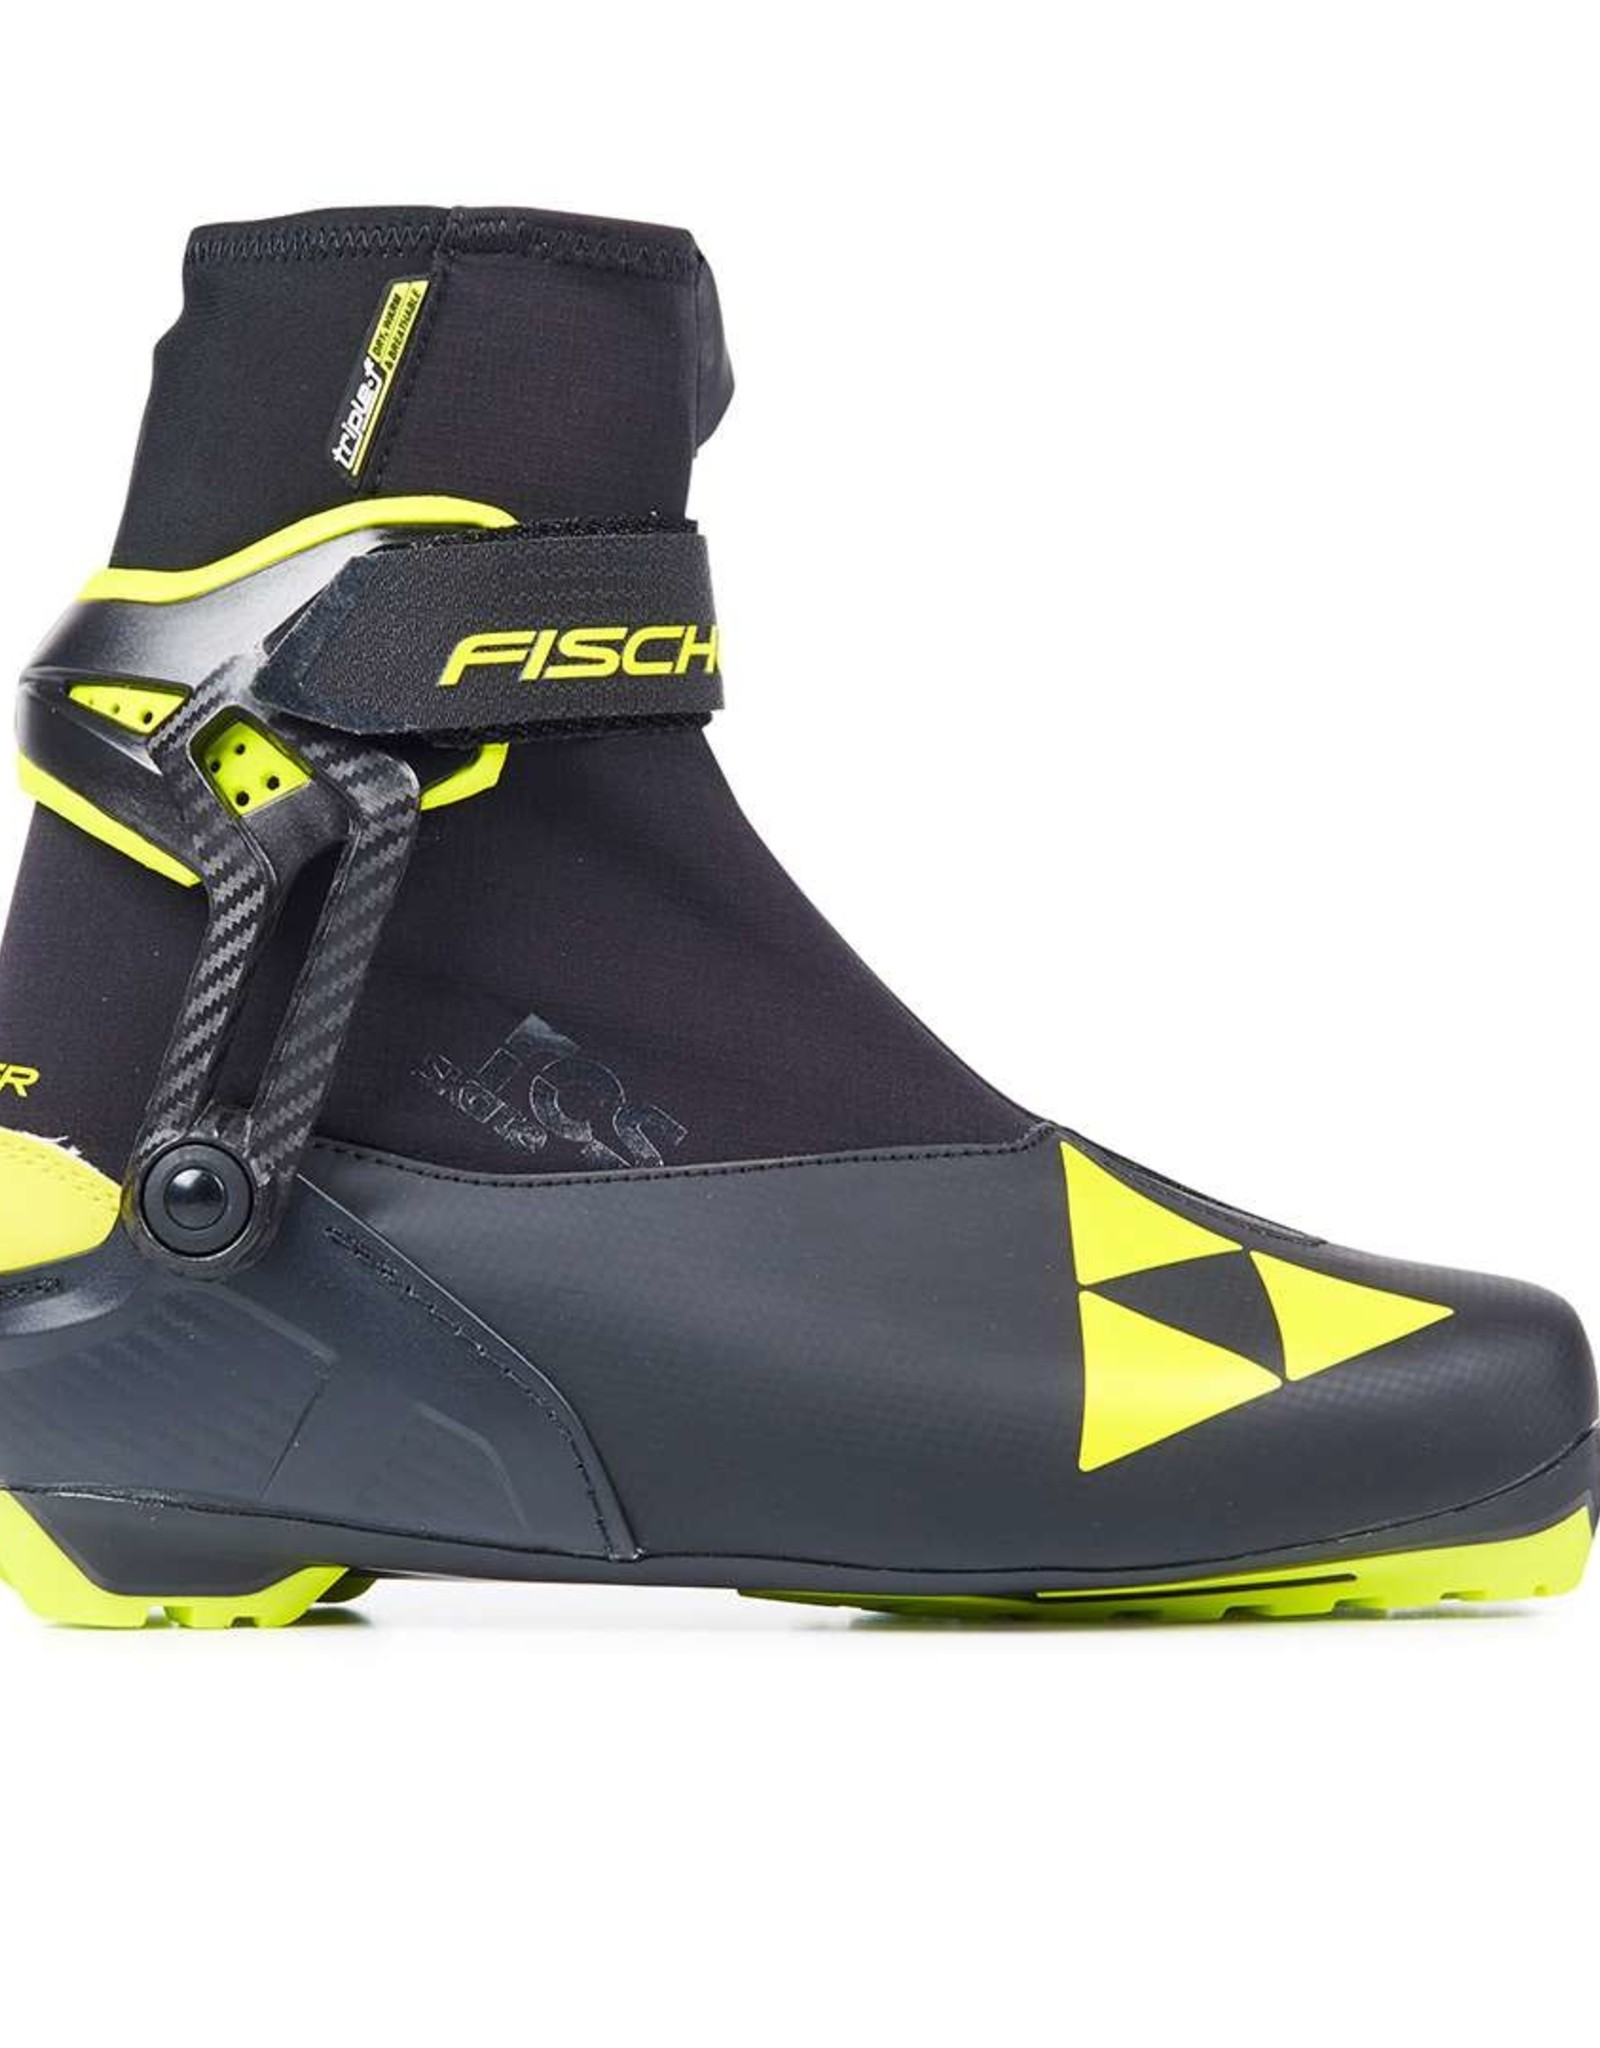 Fischer RCS Skate Boot Turnamic